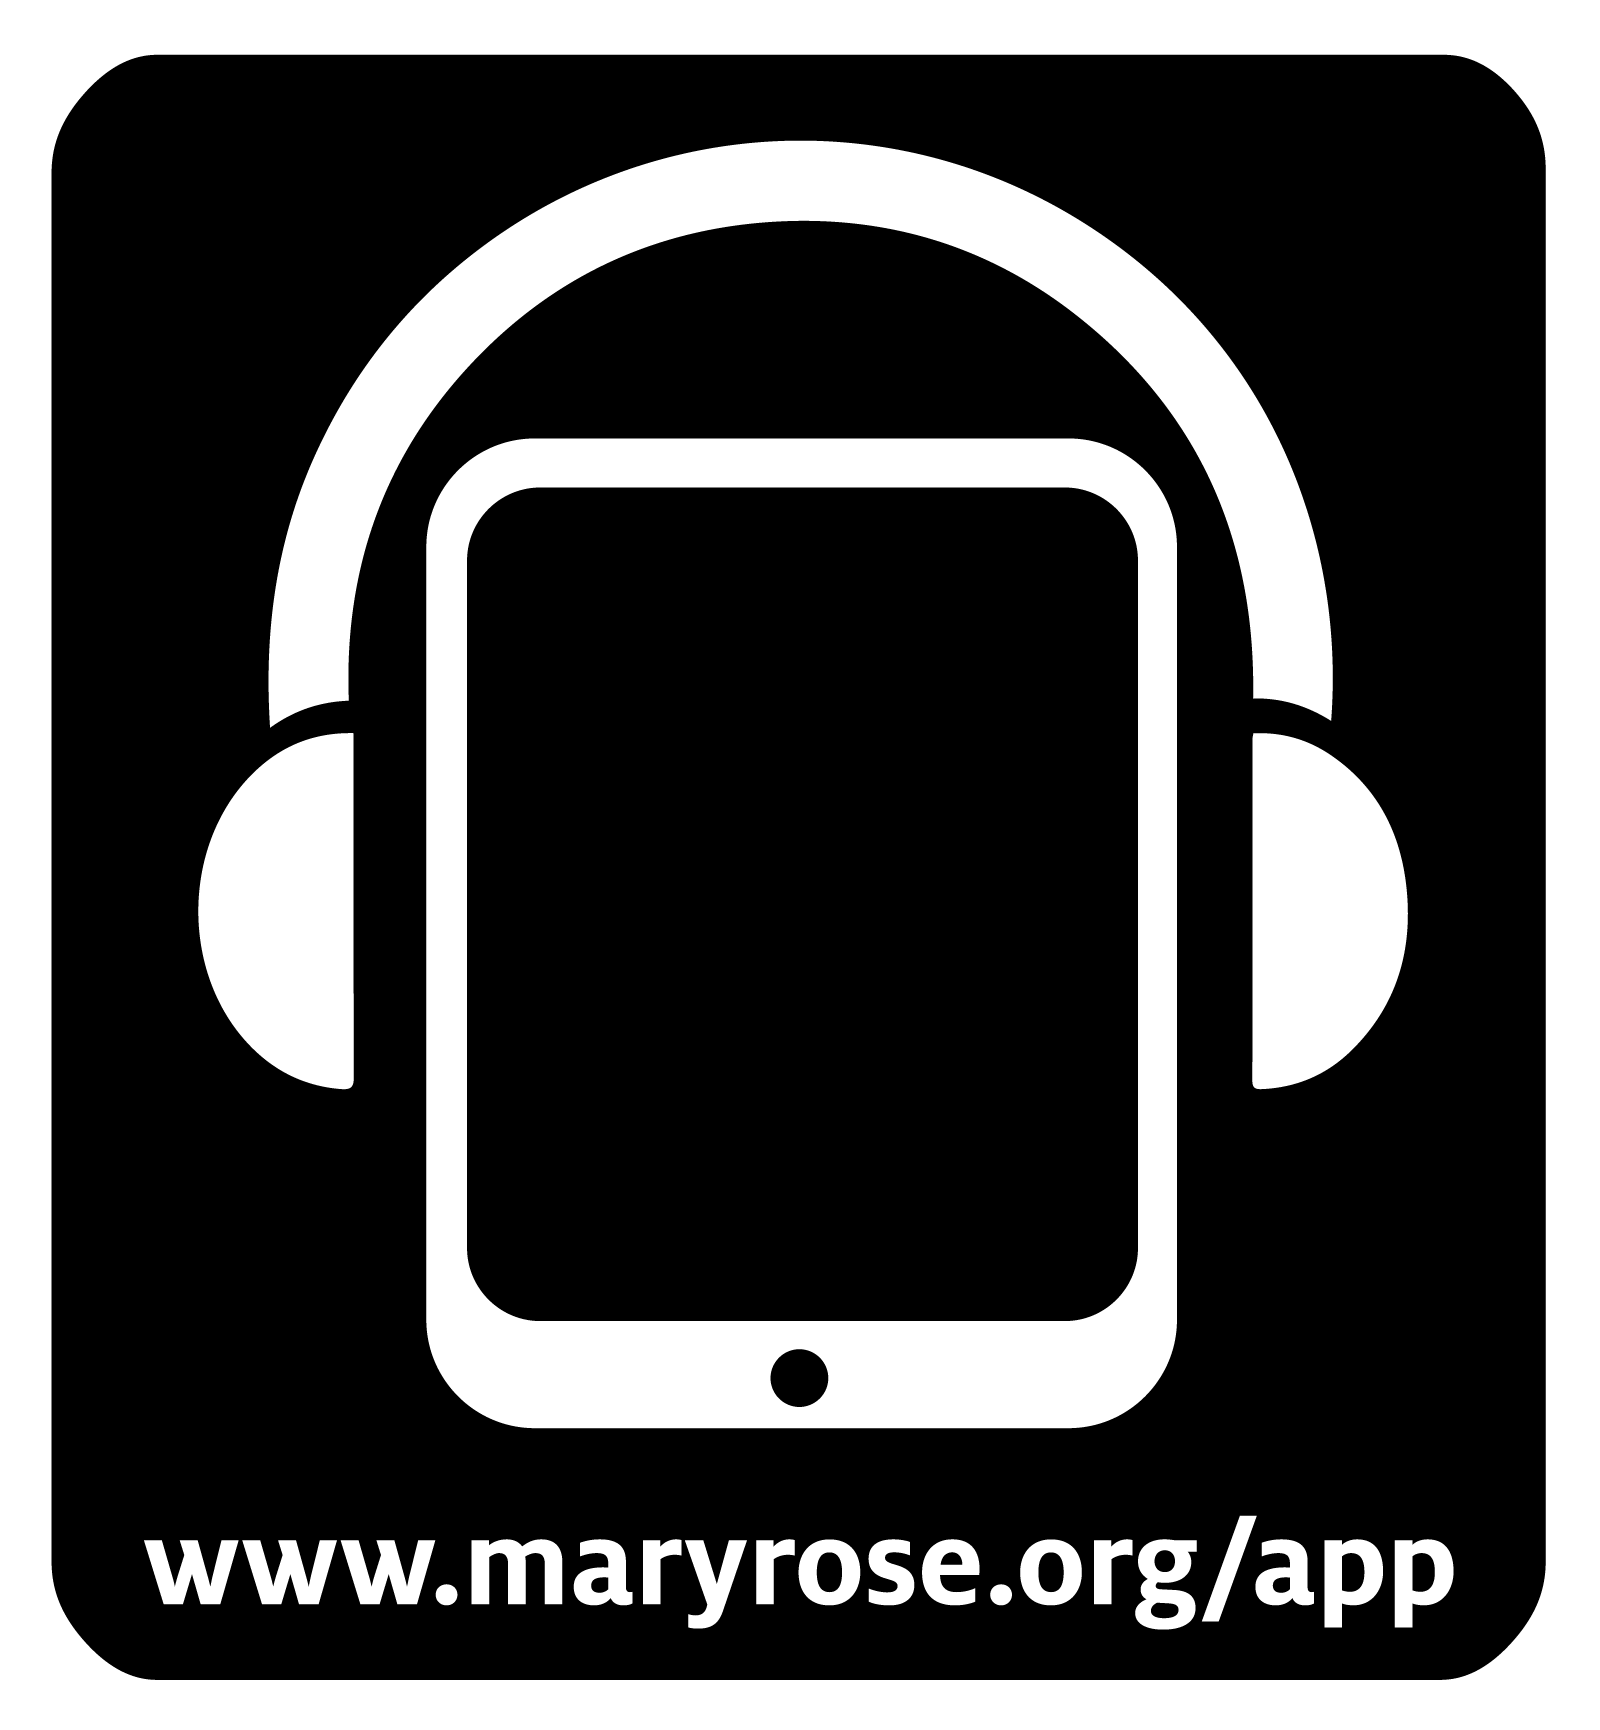 The Mary Rose App signage